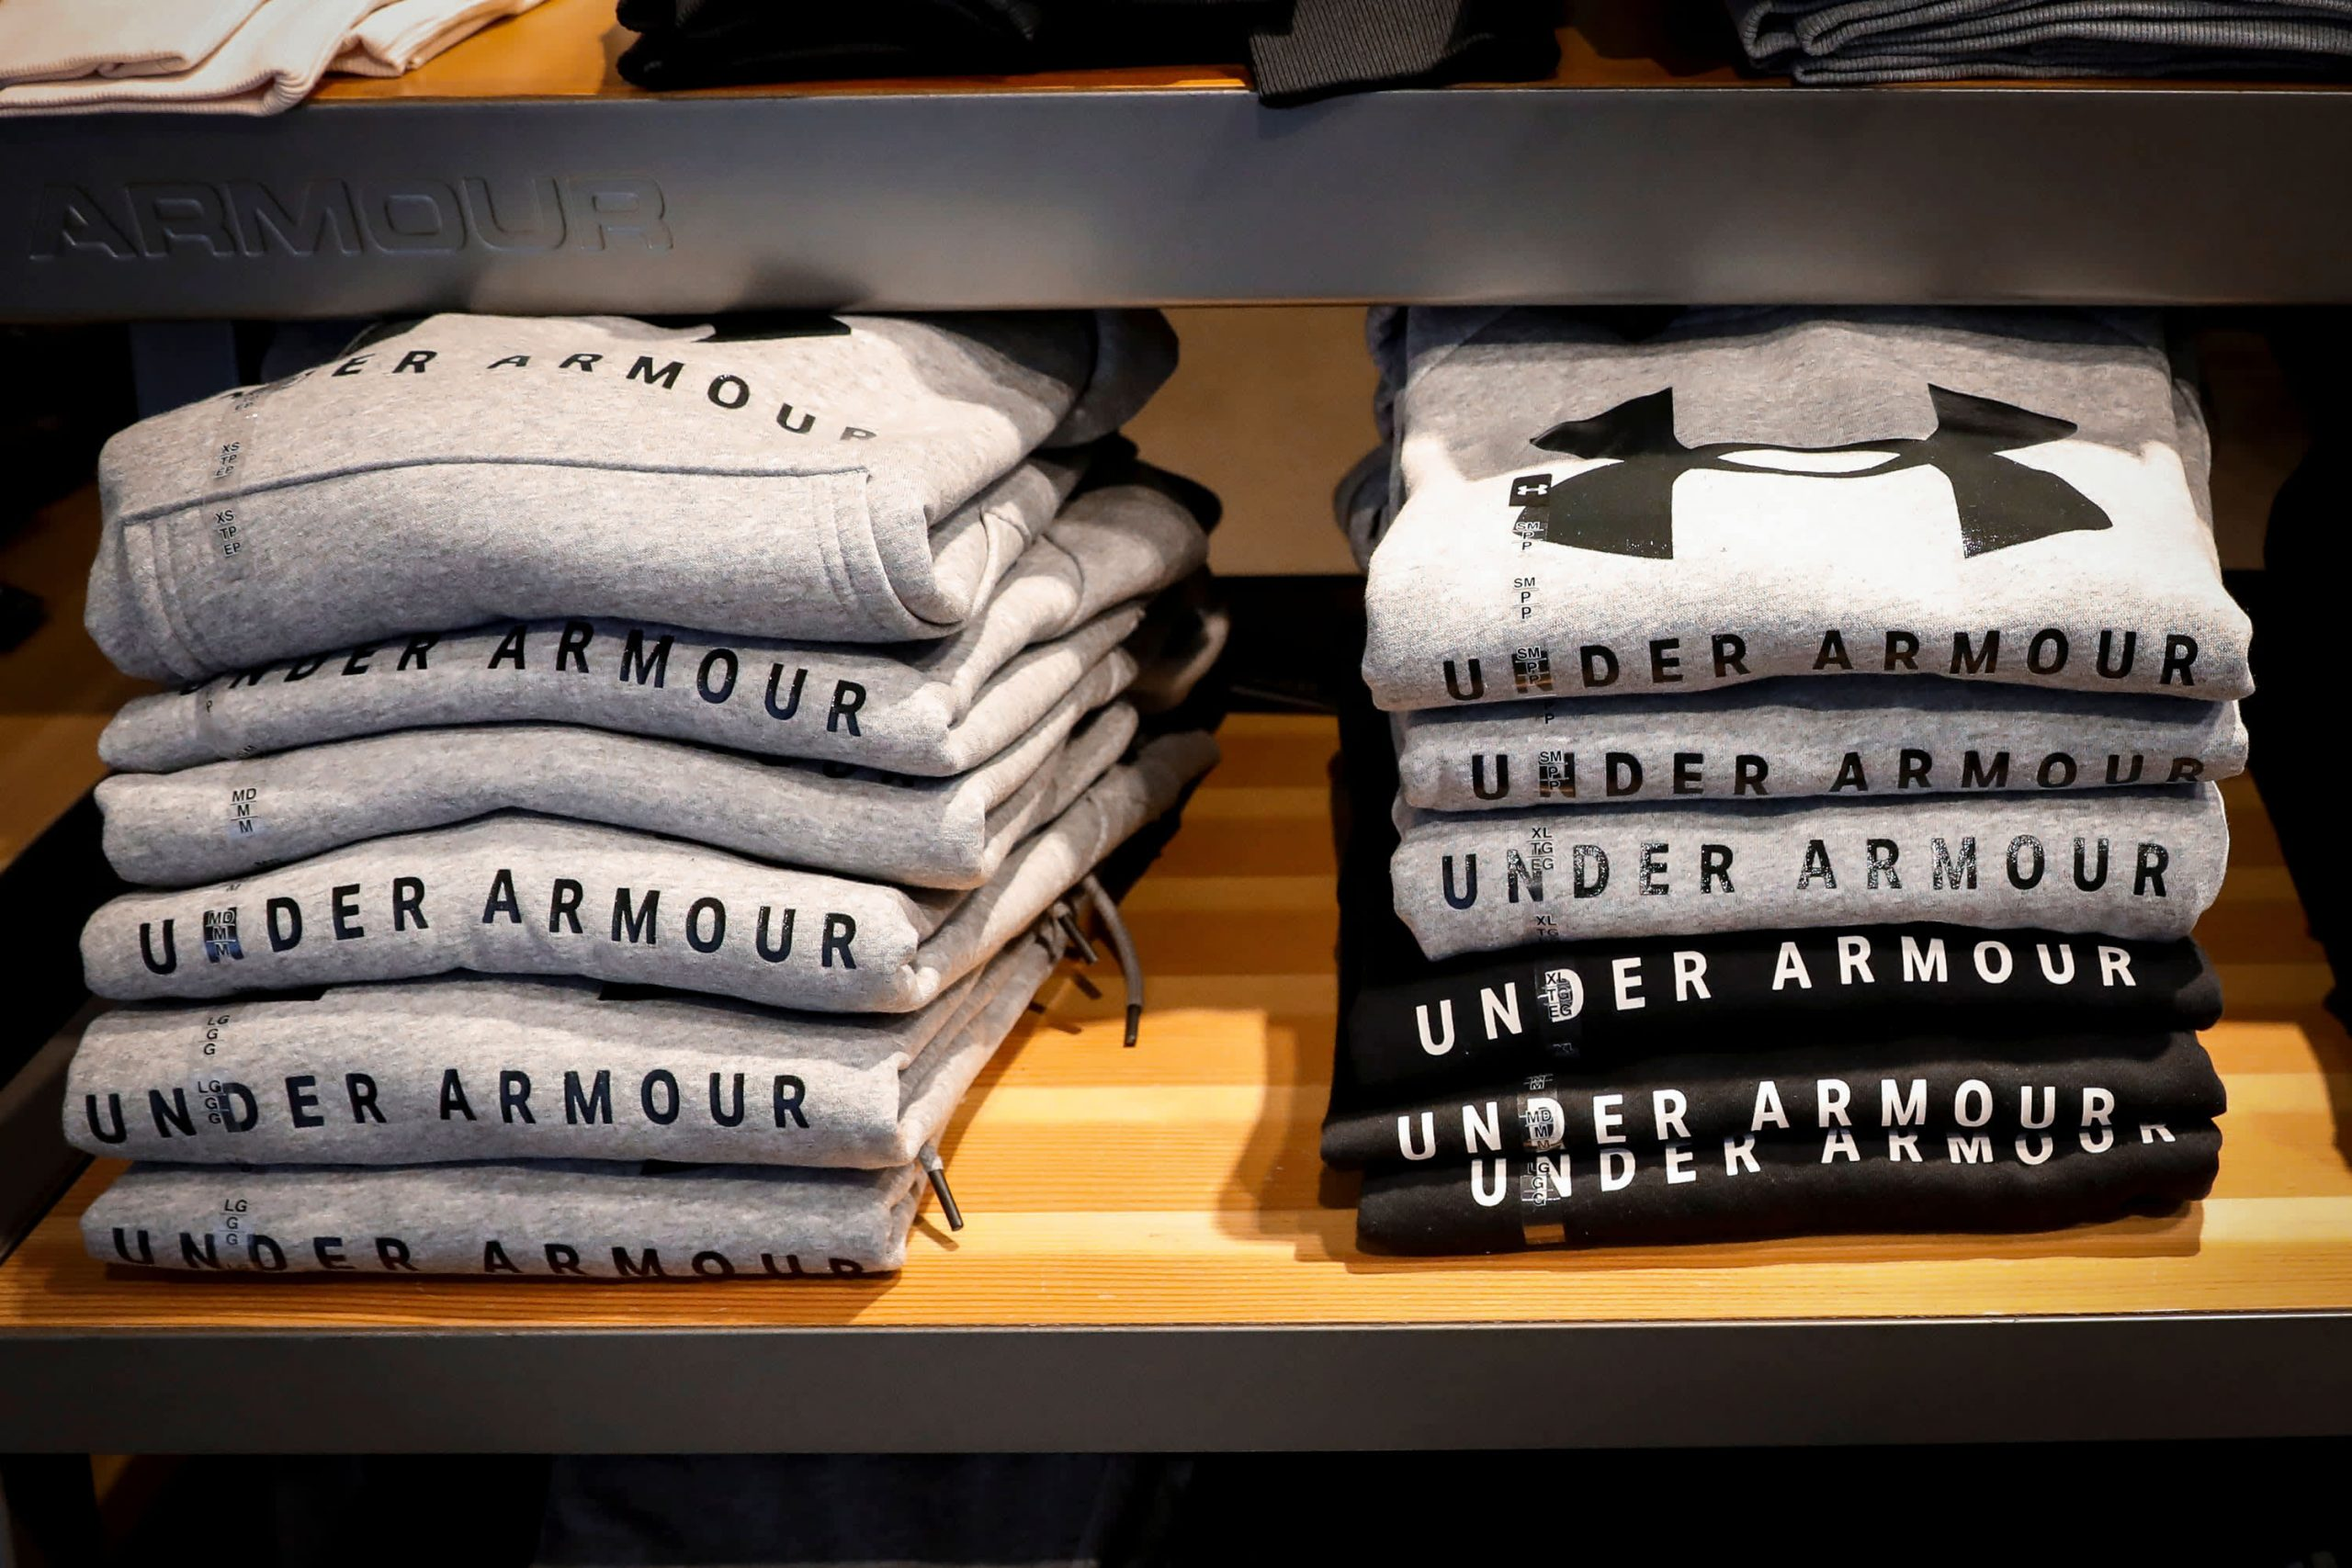 under-armour-uaa-reports-q4-2020-earnings-beat-digital-sales-boost